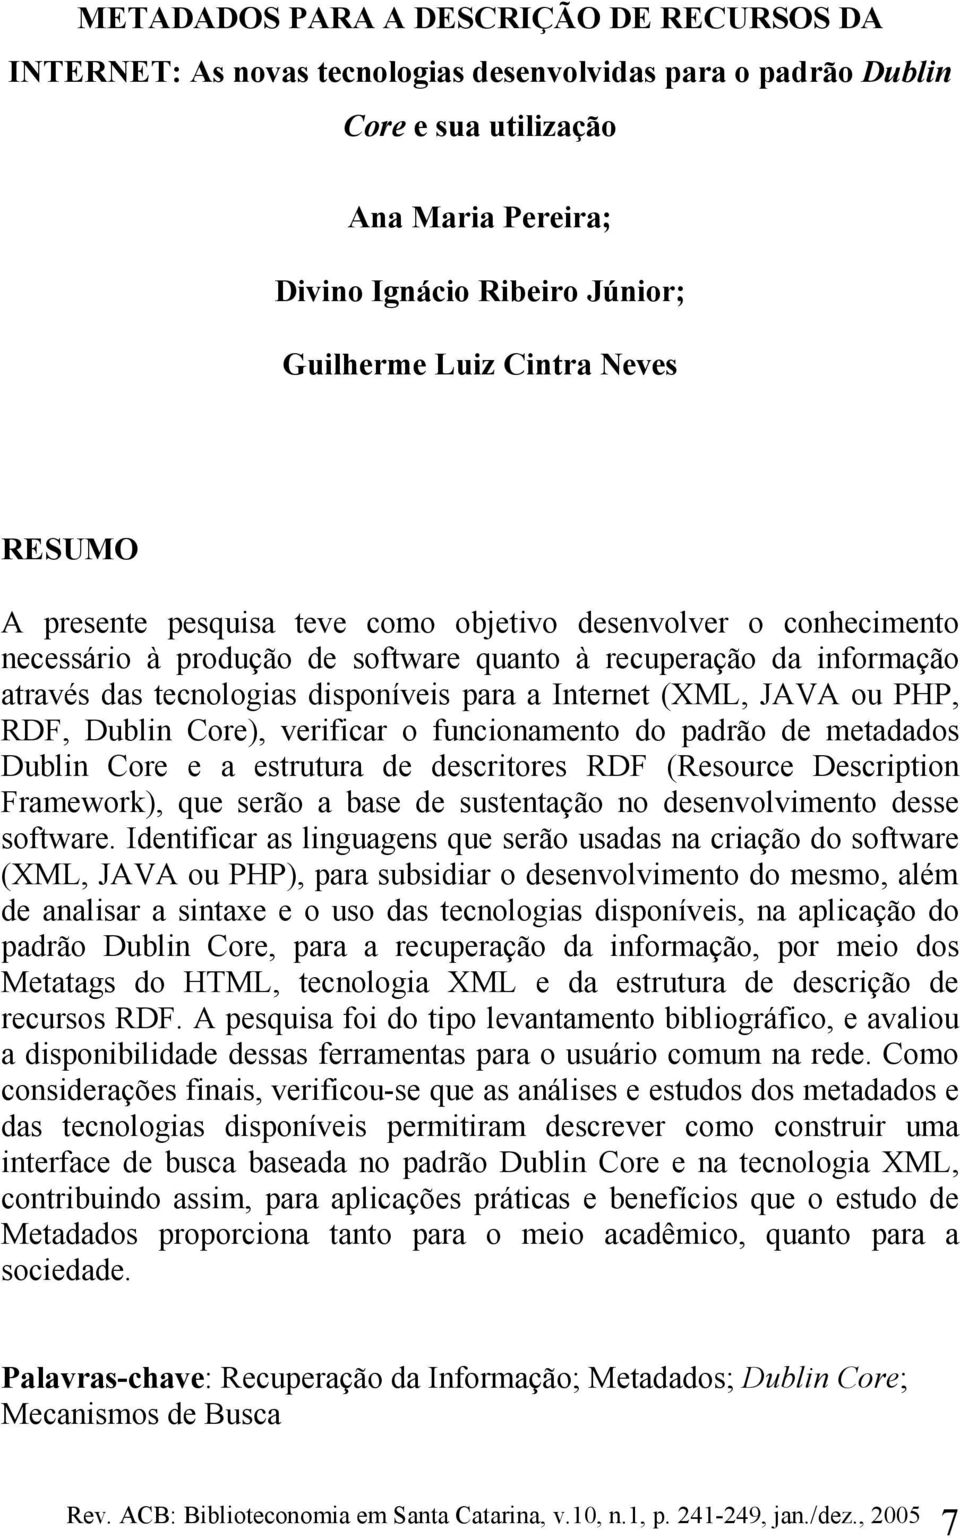 Internet (XML, JAVA ou PHP, RDF, Dublin Core), verificar o funcionamento do padrão de metadados Dublin Core e a estrutura de descritores RDF (Resource Description Framework), que serão a base de